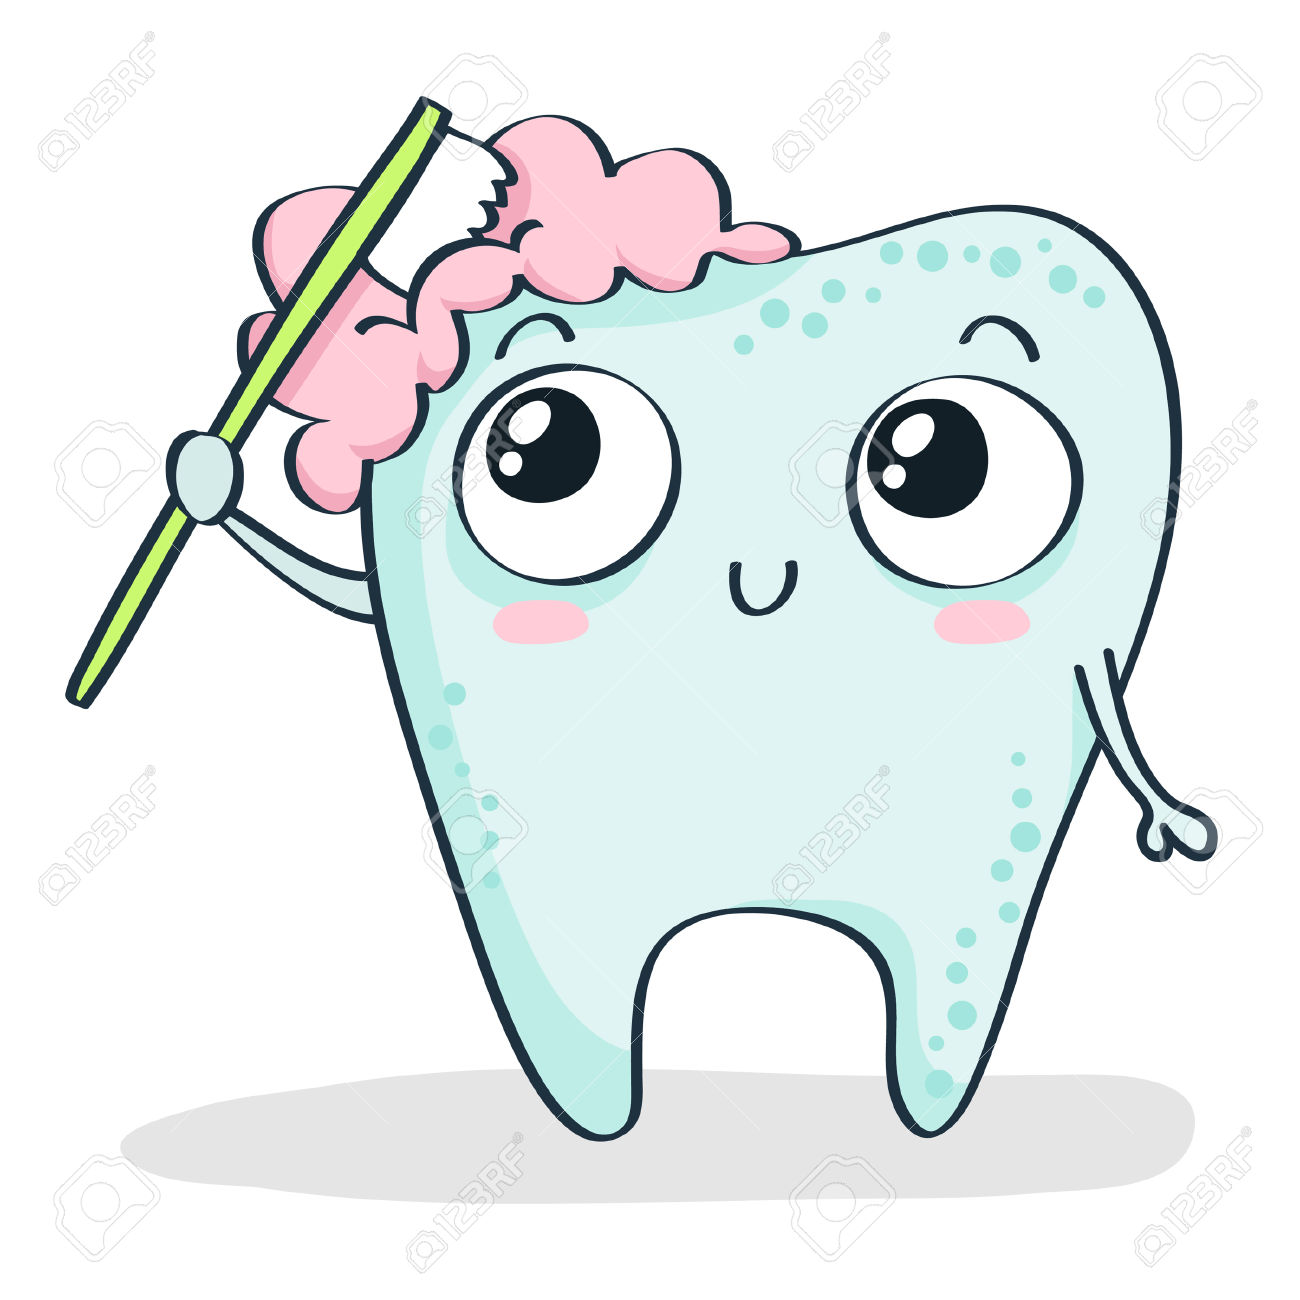 Cute tooth with hearts clipart jpg black and white download Cute Cartoon Tooth Brushing Itself Isolated On White Royalty Free ... jpg black and white download